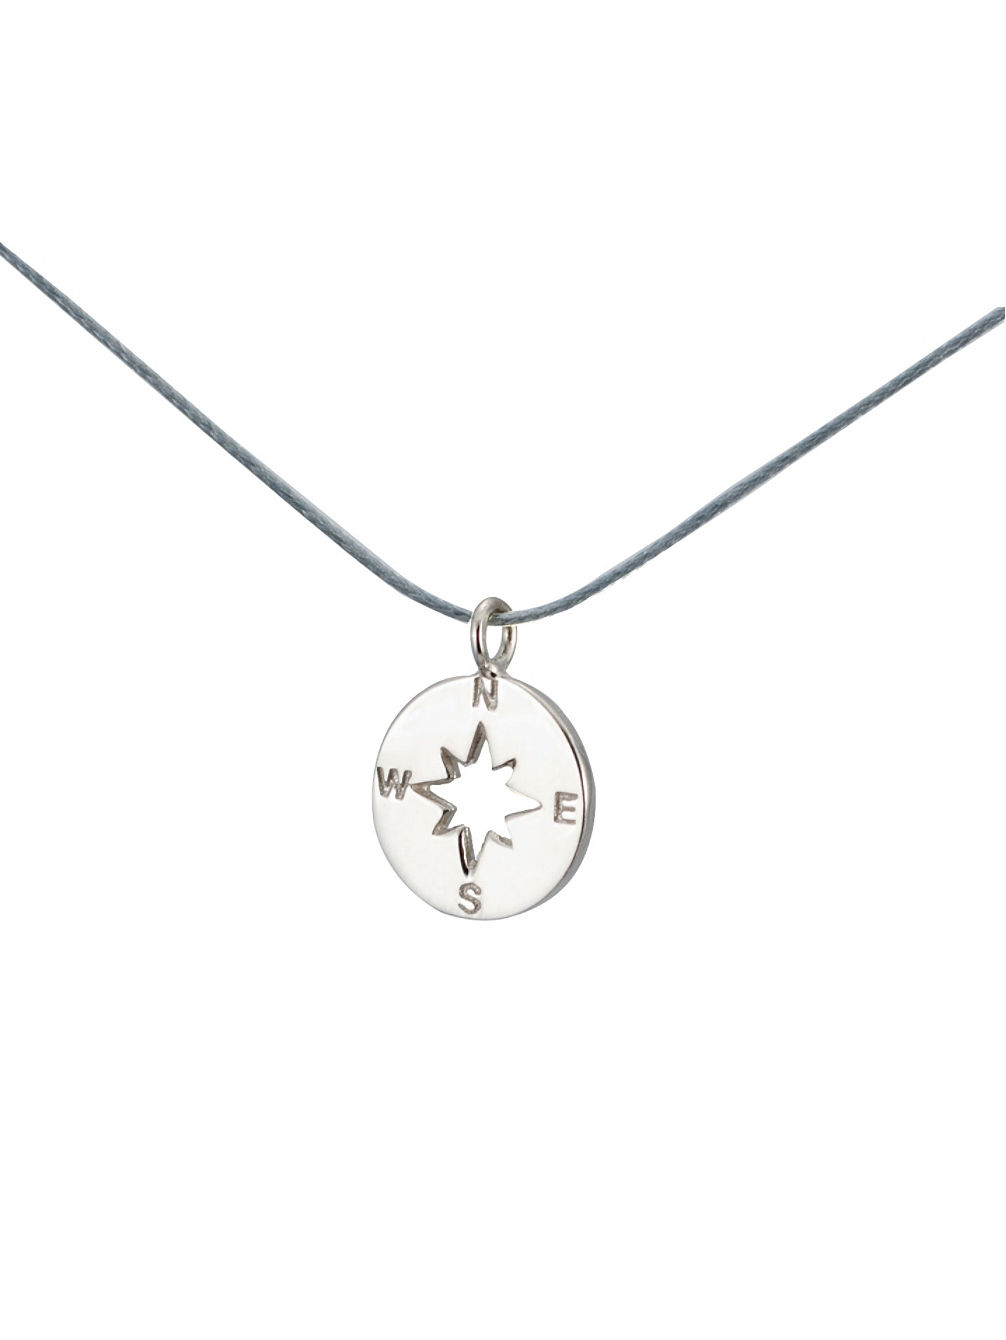 Wind Rose S Necklace